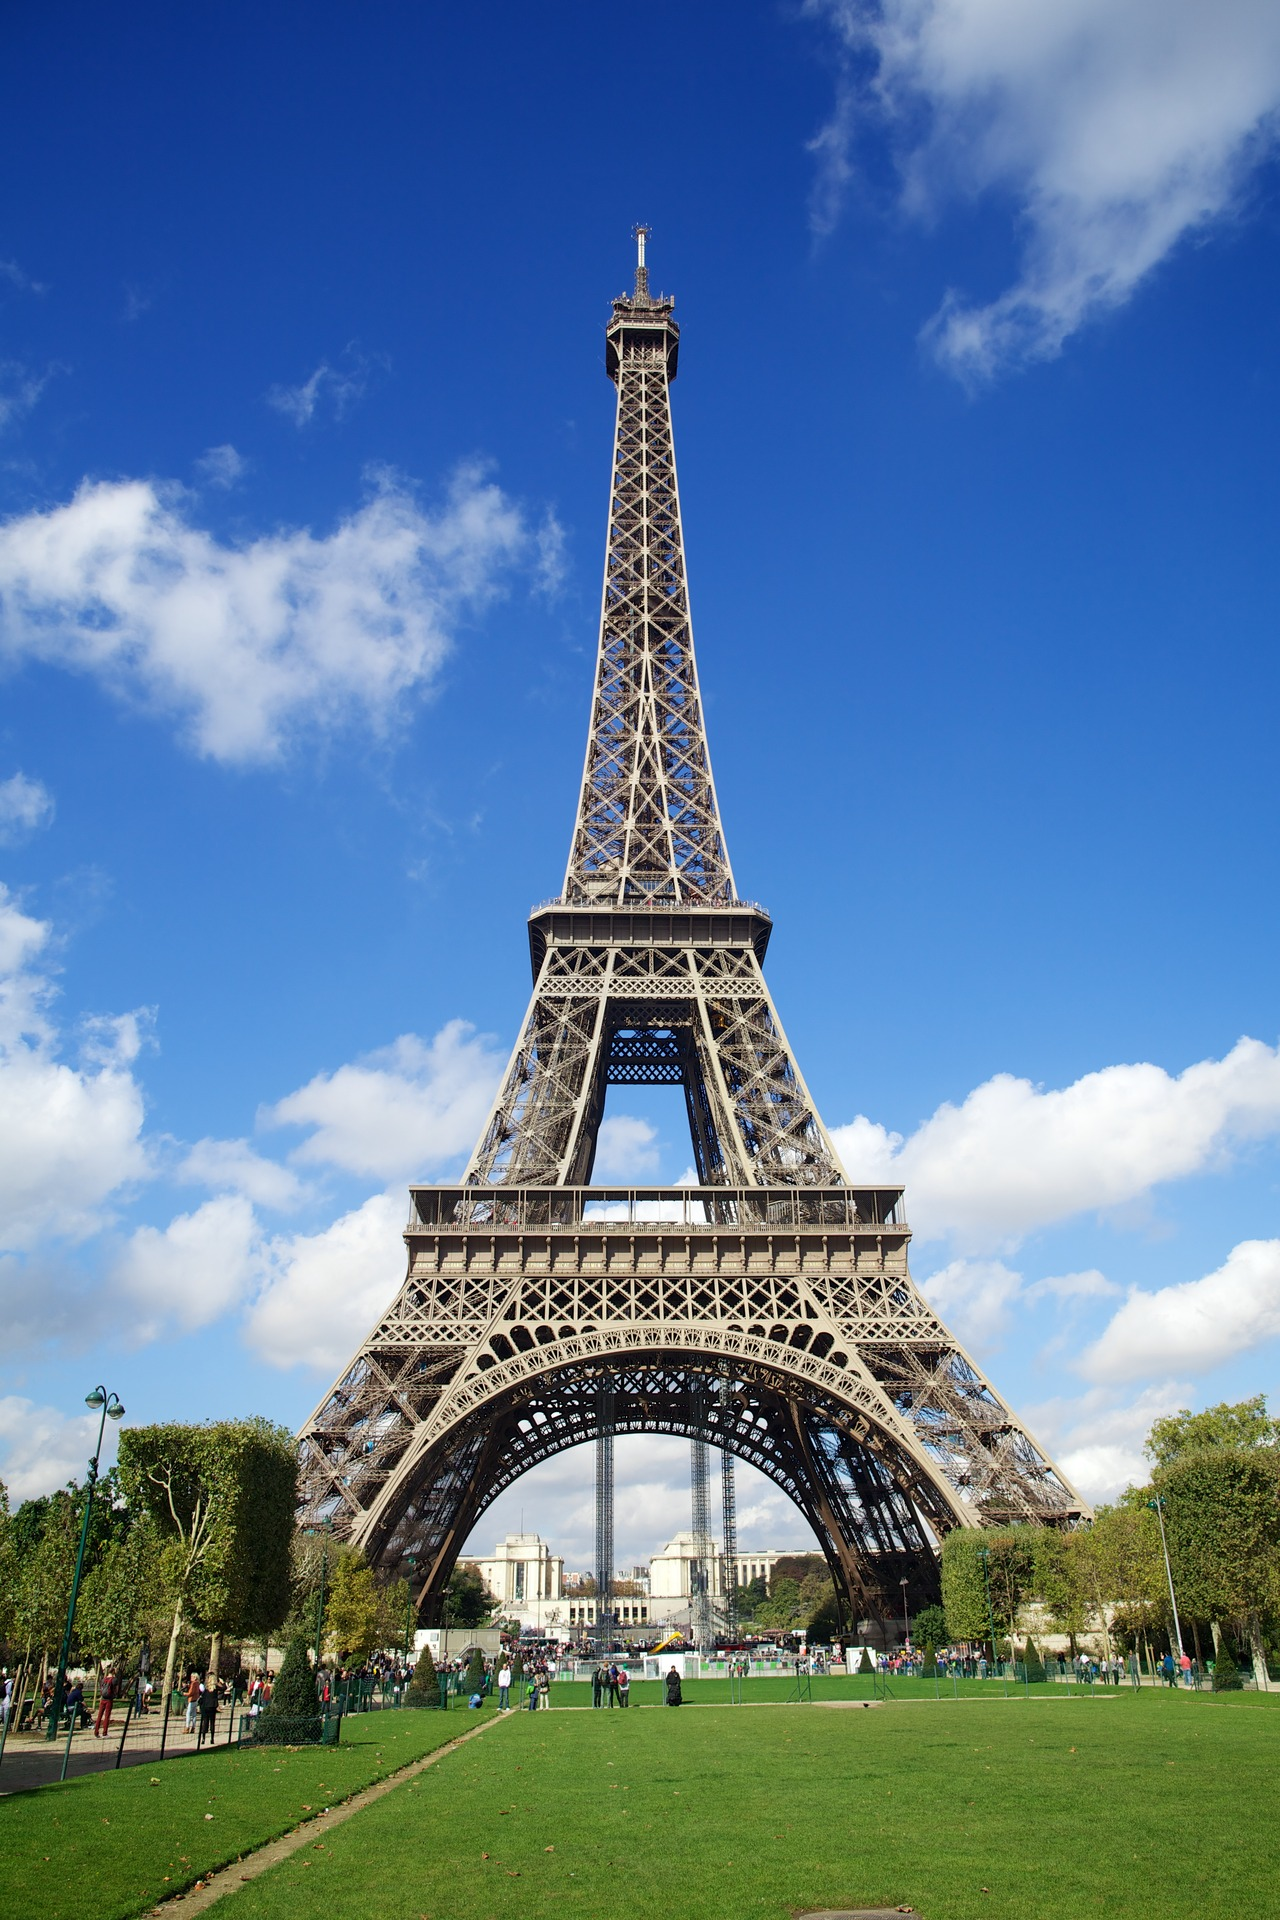 Tour eiffel wiki paris fandom powered by wikia - Image de tour eiffel ...